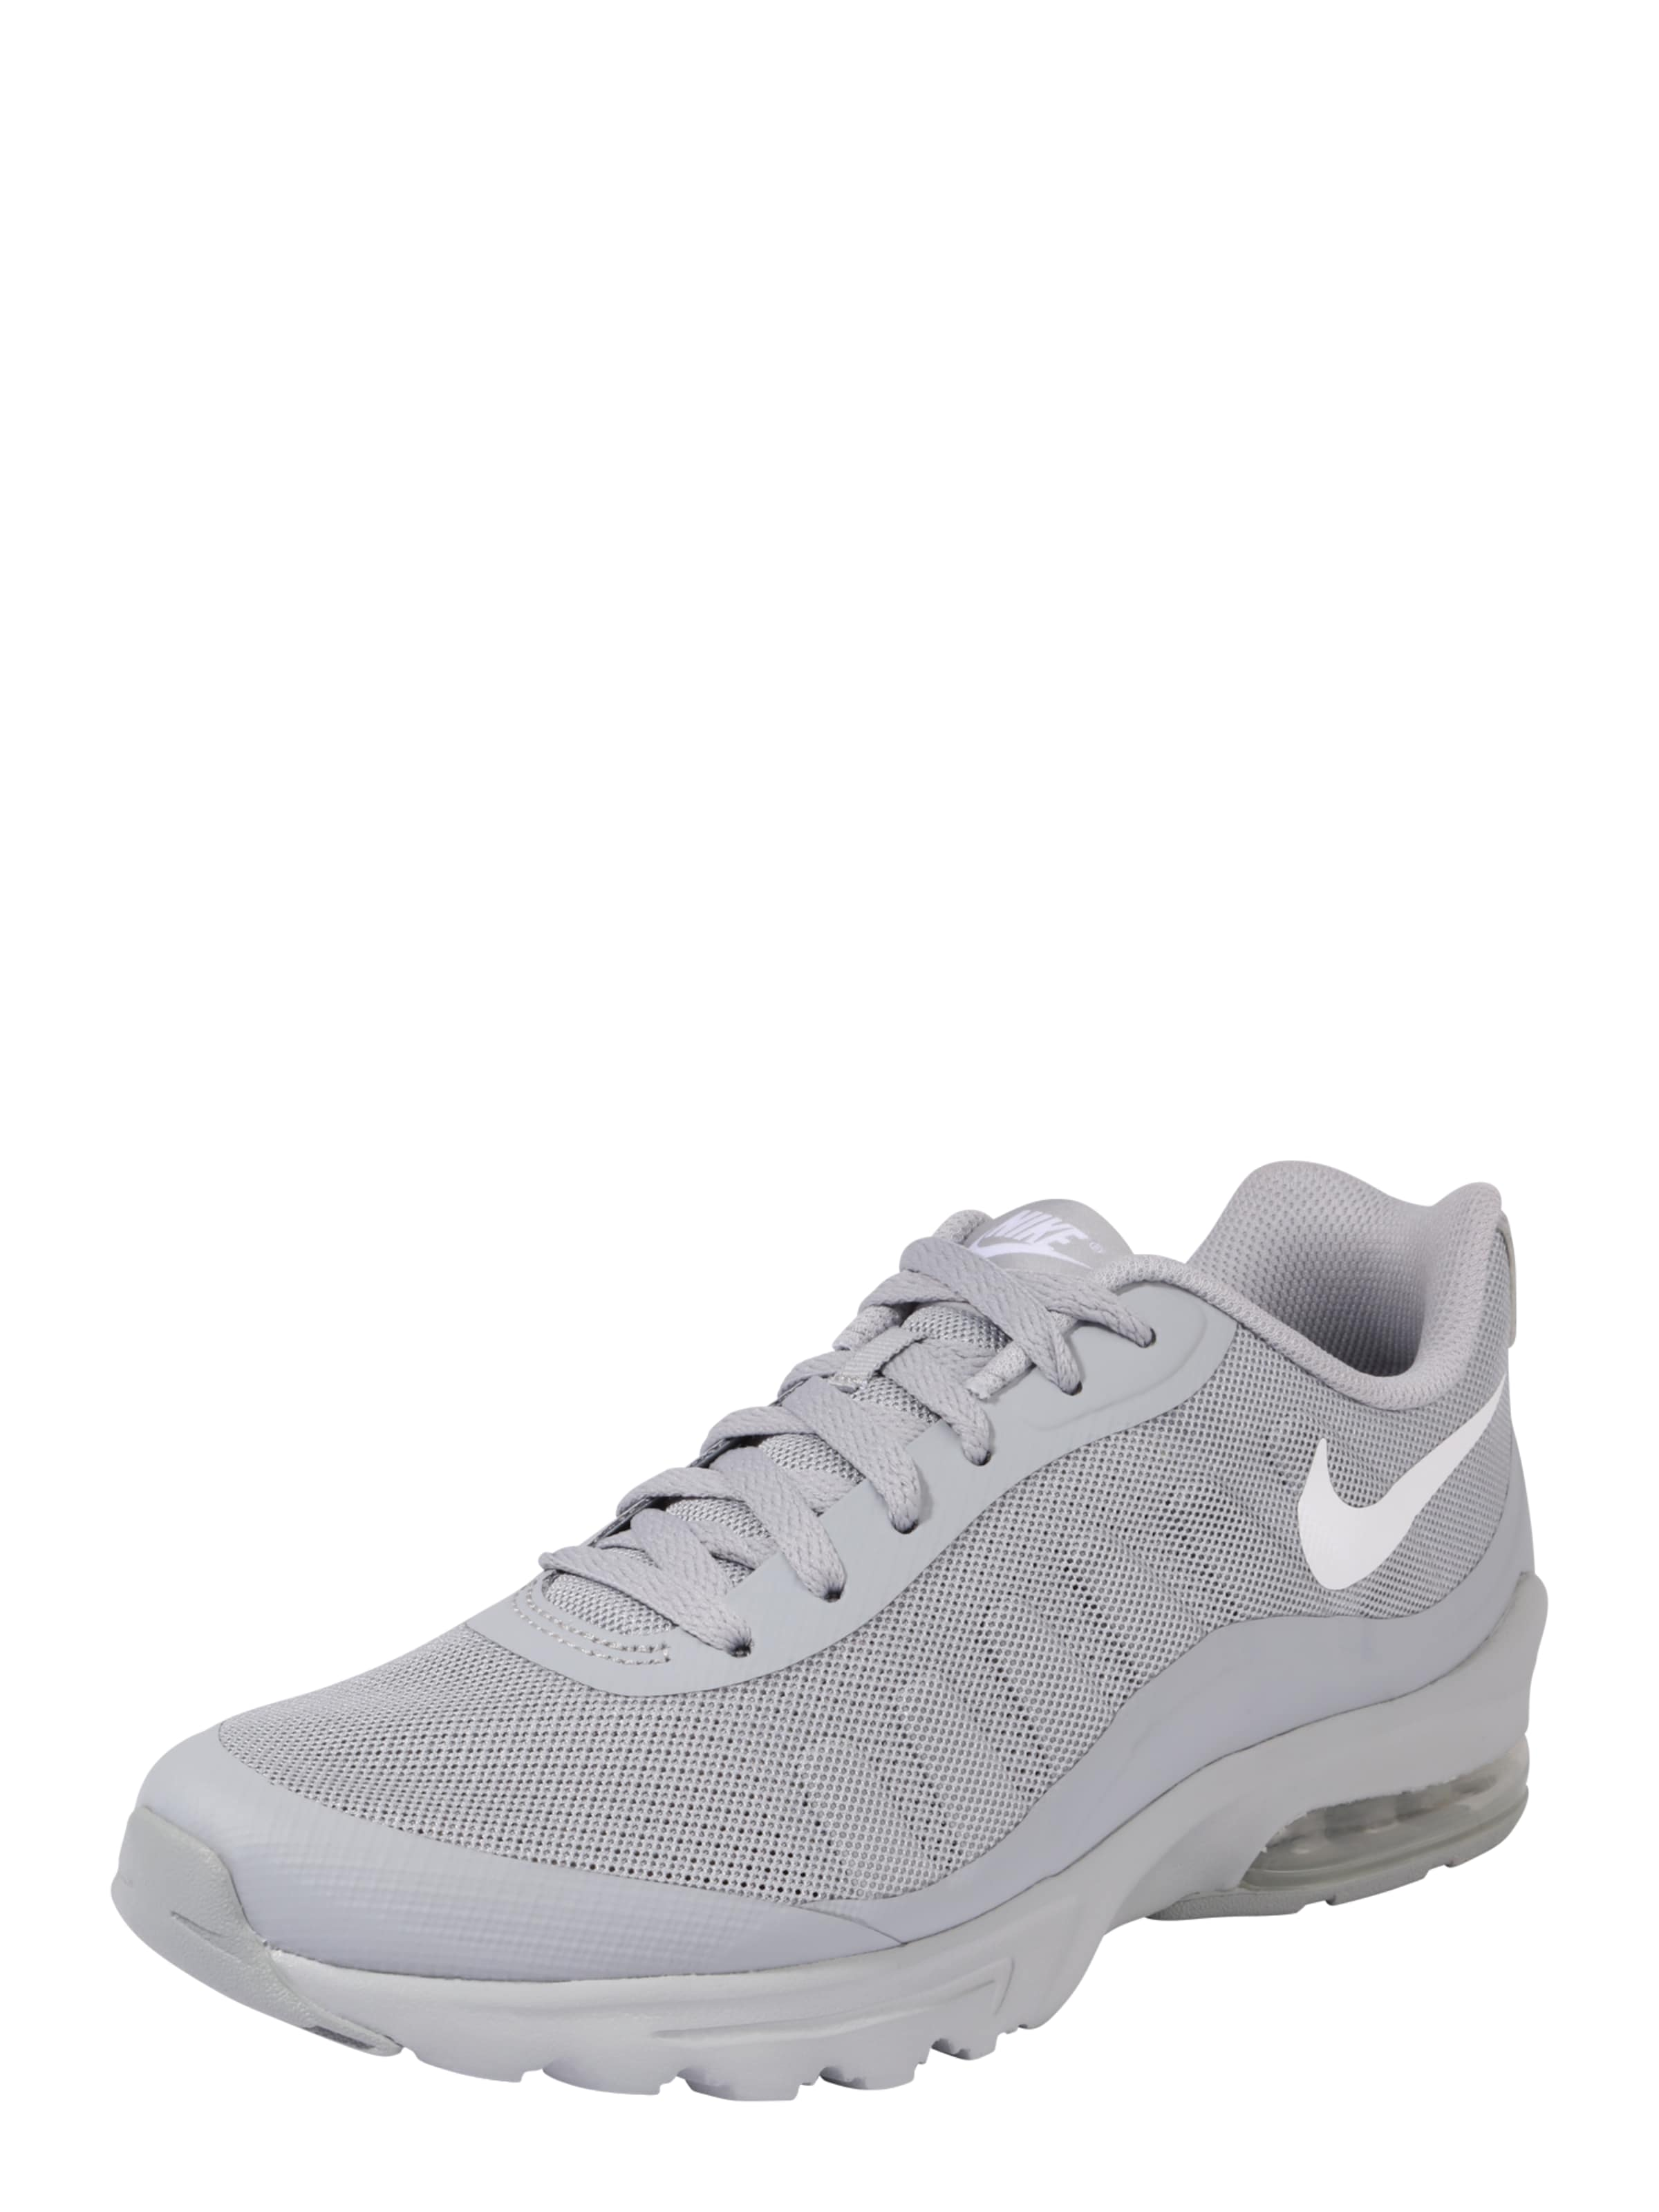 Nike Baskets Air Max Couche De Vêtements De Sport Invigor « Gris / Blanc UHYB0uw